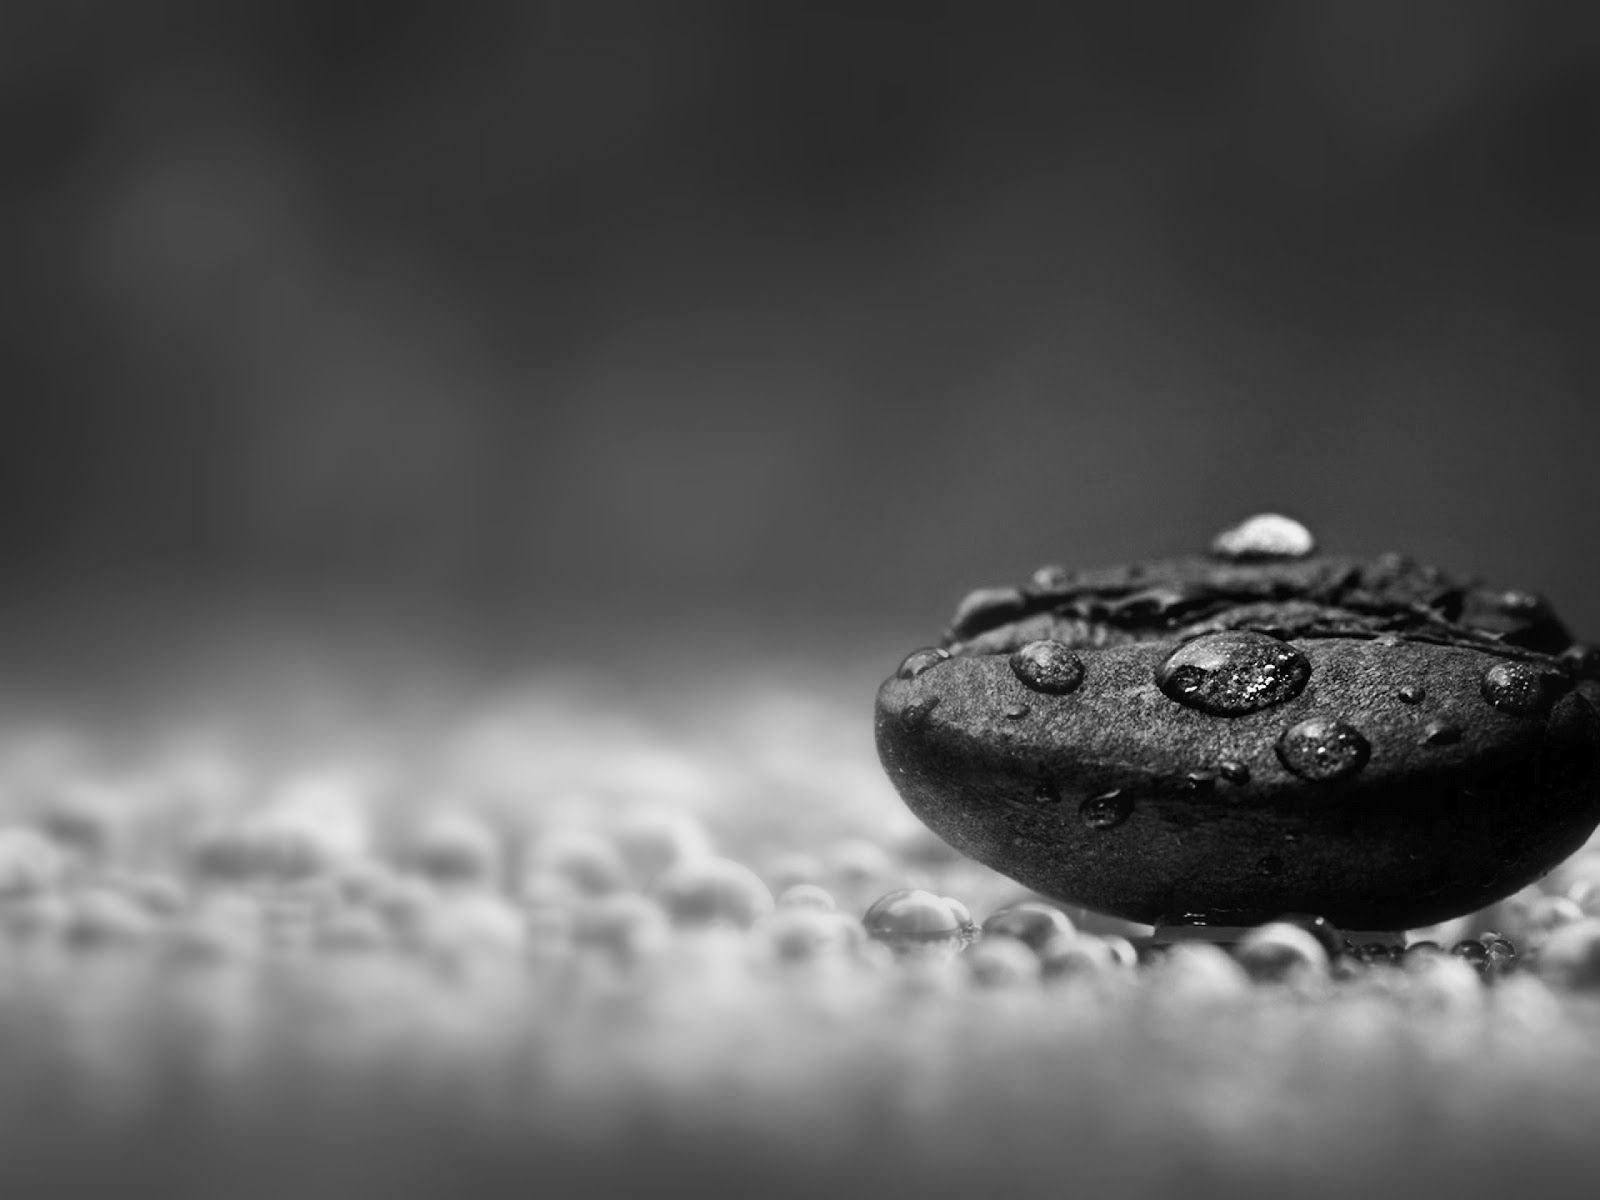 Nature Water Drops Macro Black And White Photography Jpg 1600 1200 Macro Photography Wallpaper Coffee Photography Rain And Coffee